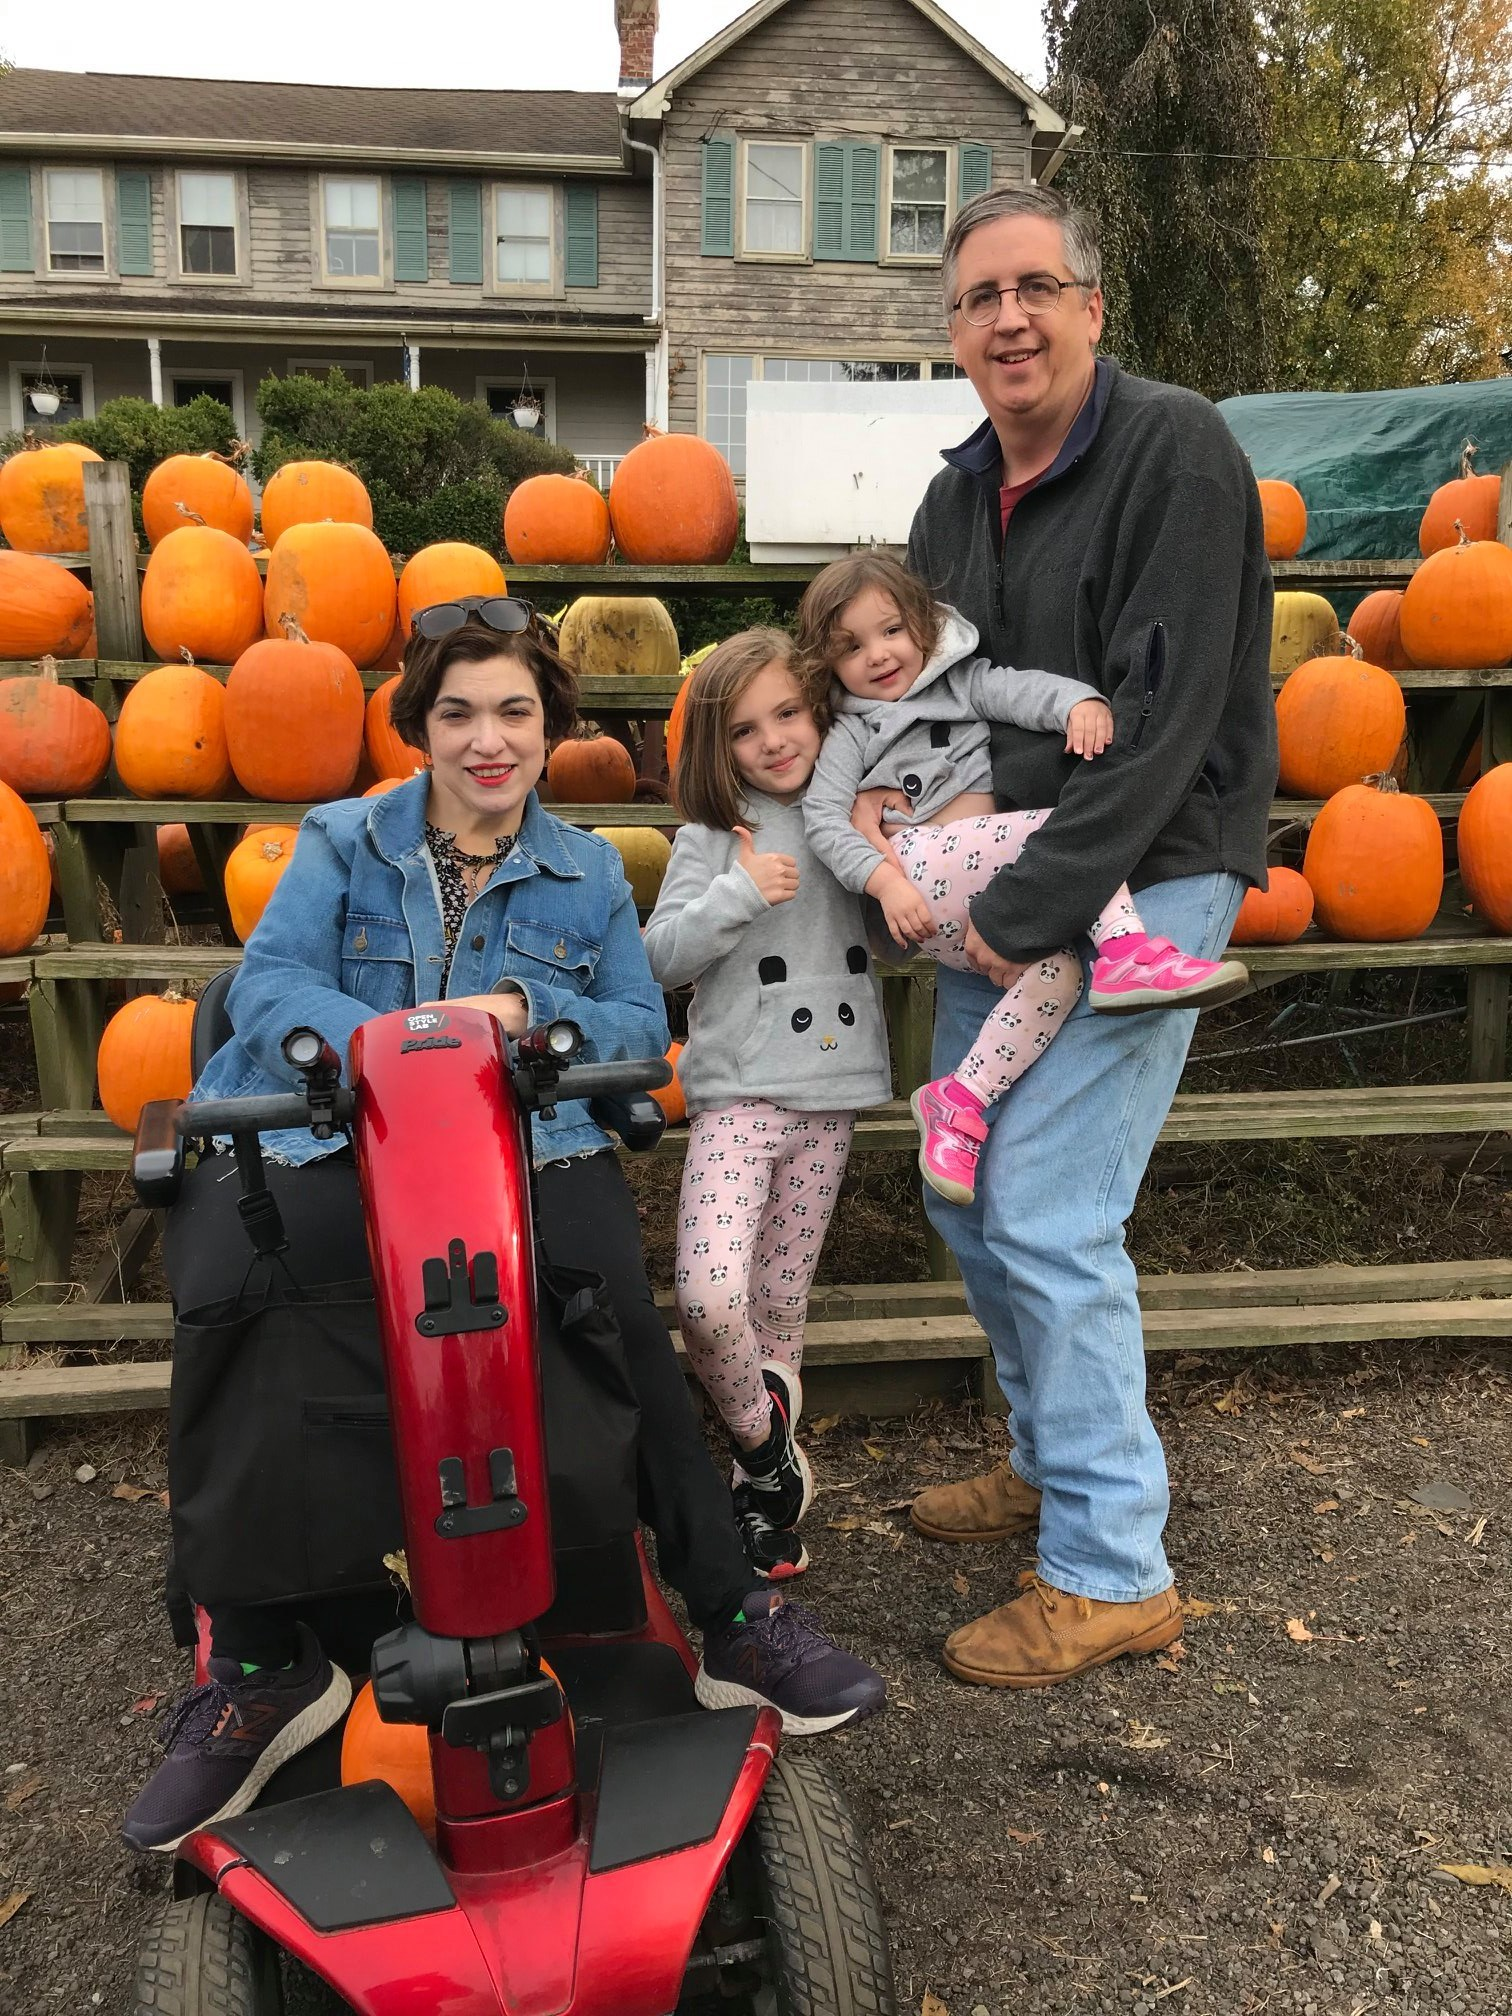 Kern family pumpkin picking